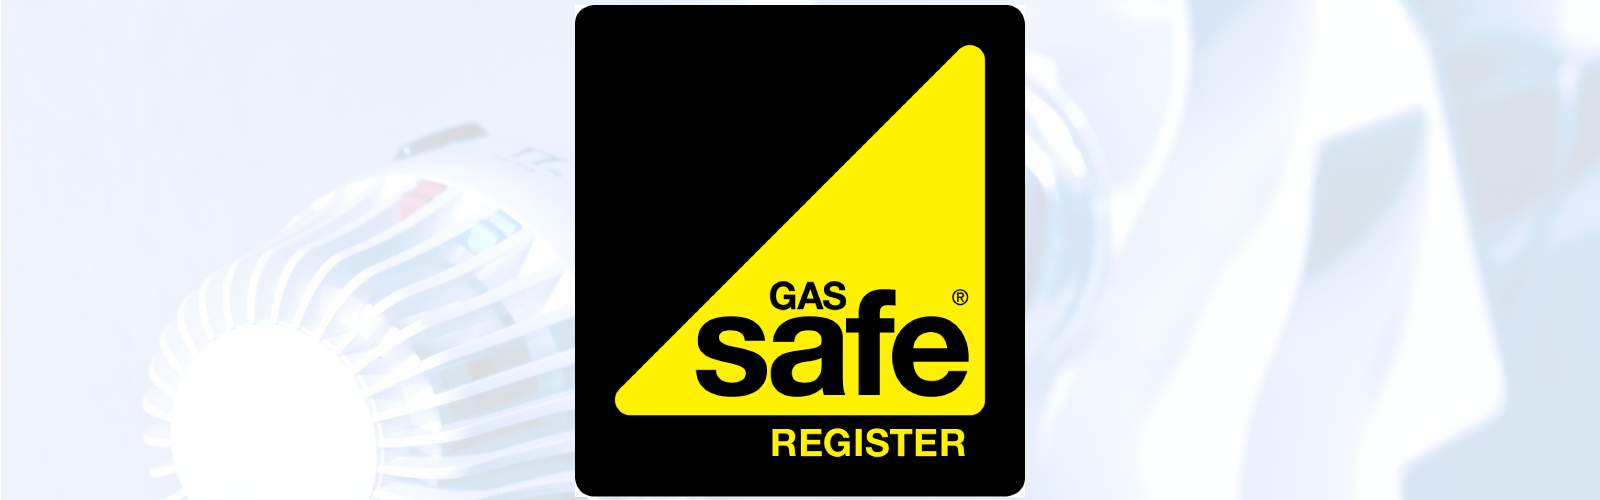 Gas Safety Certifications In Berkshire | British Gas Service | Professional Heating Services